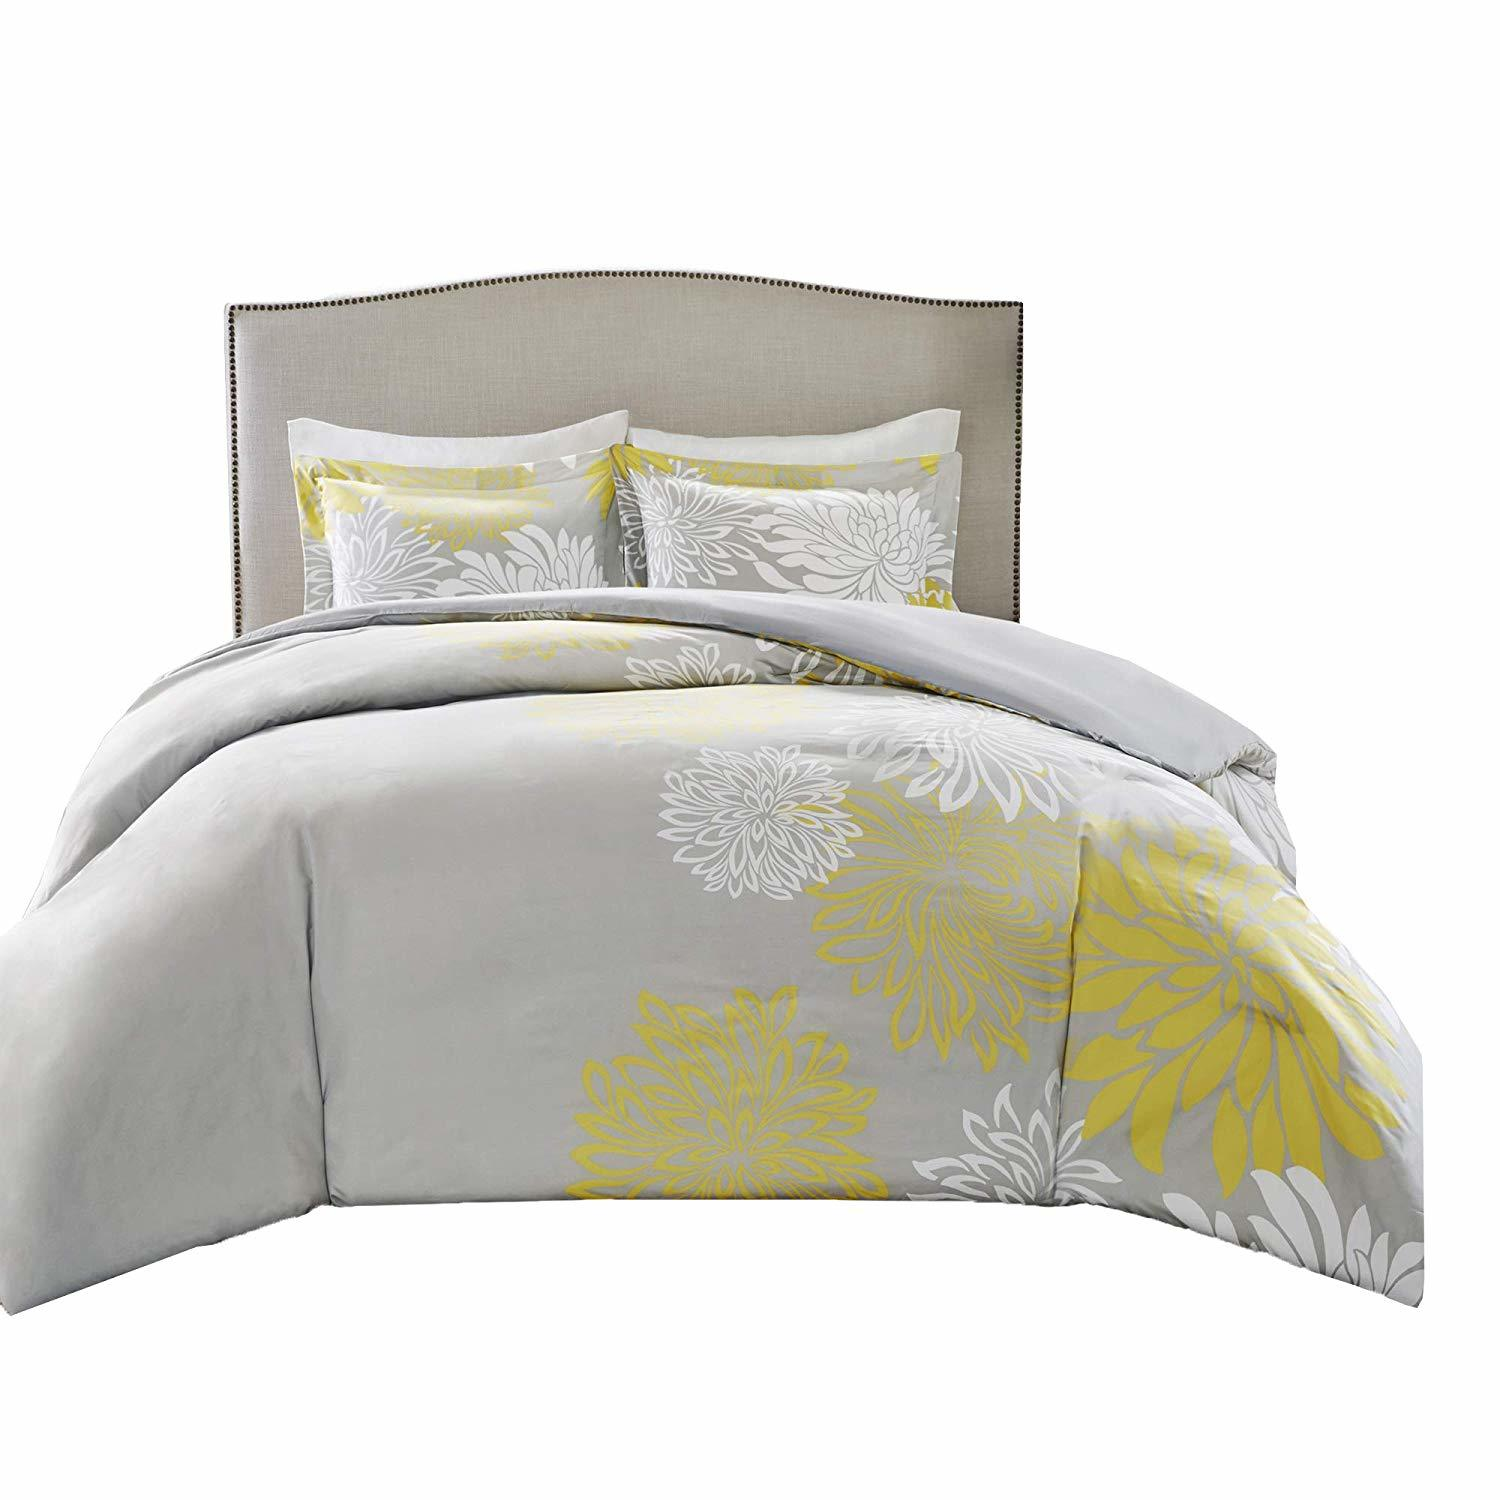 Comfort Spaces 5 Piece Comforter Set